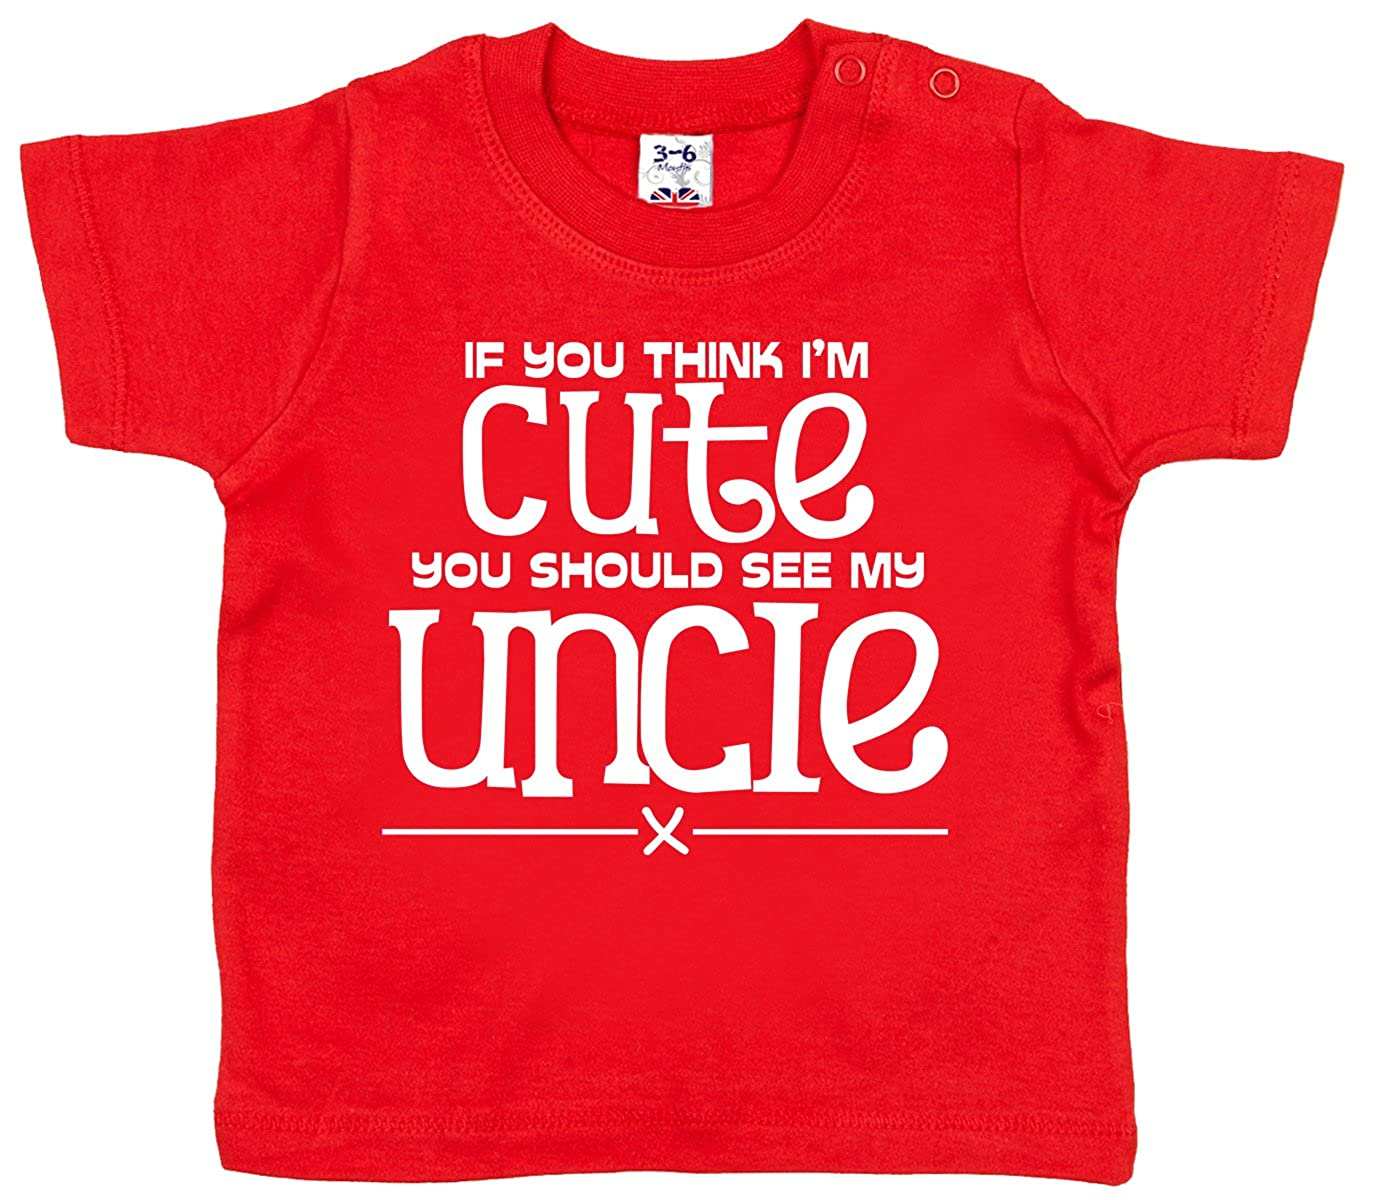 Dirty Fingers, If you think I'm Cute see my Uncle, Baby T-shirt